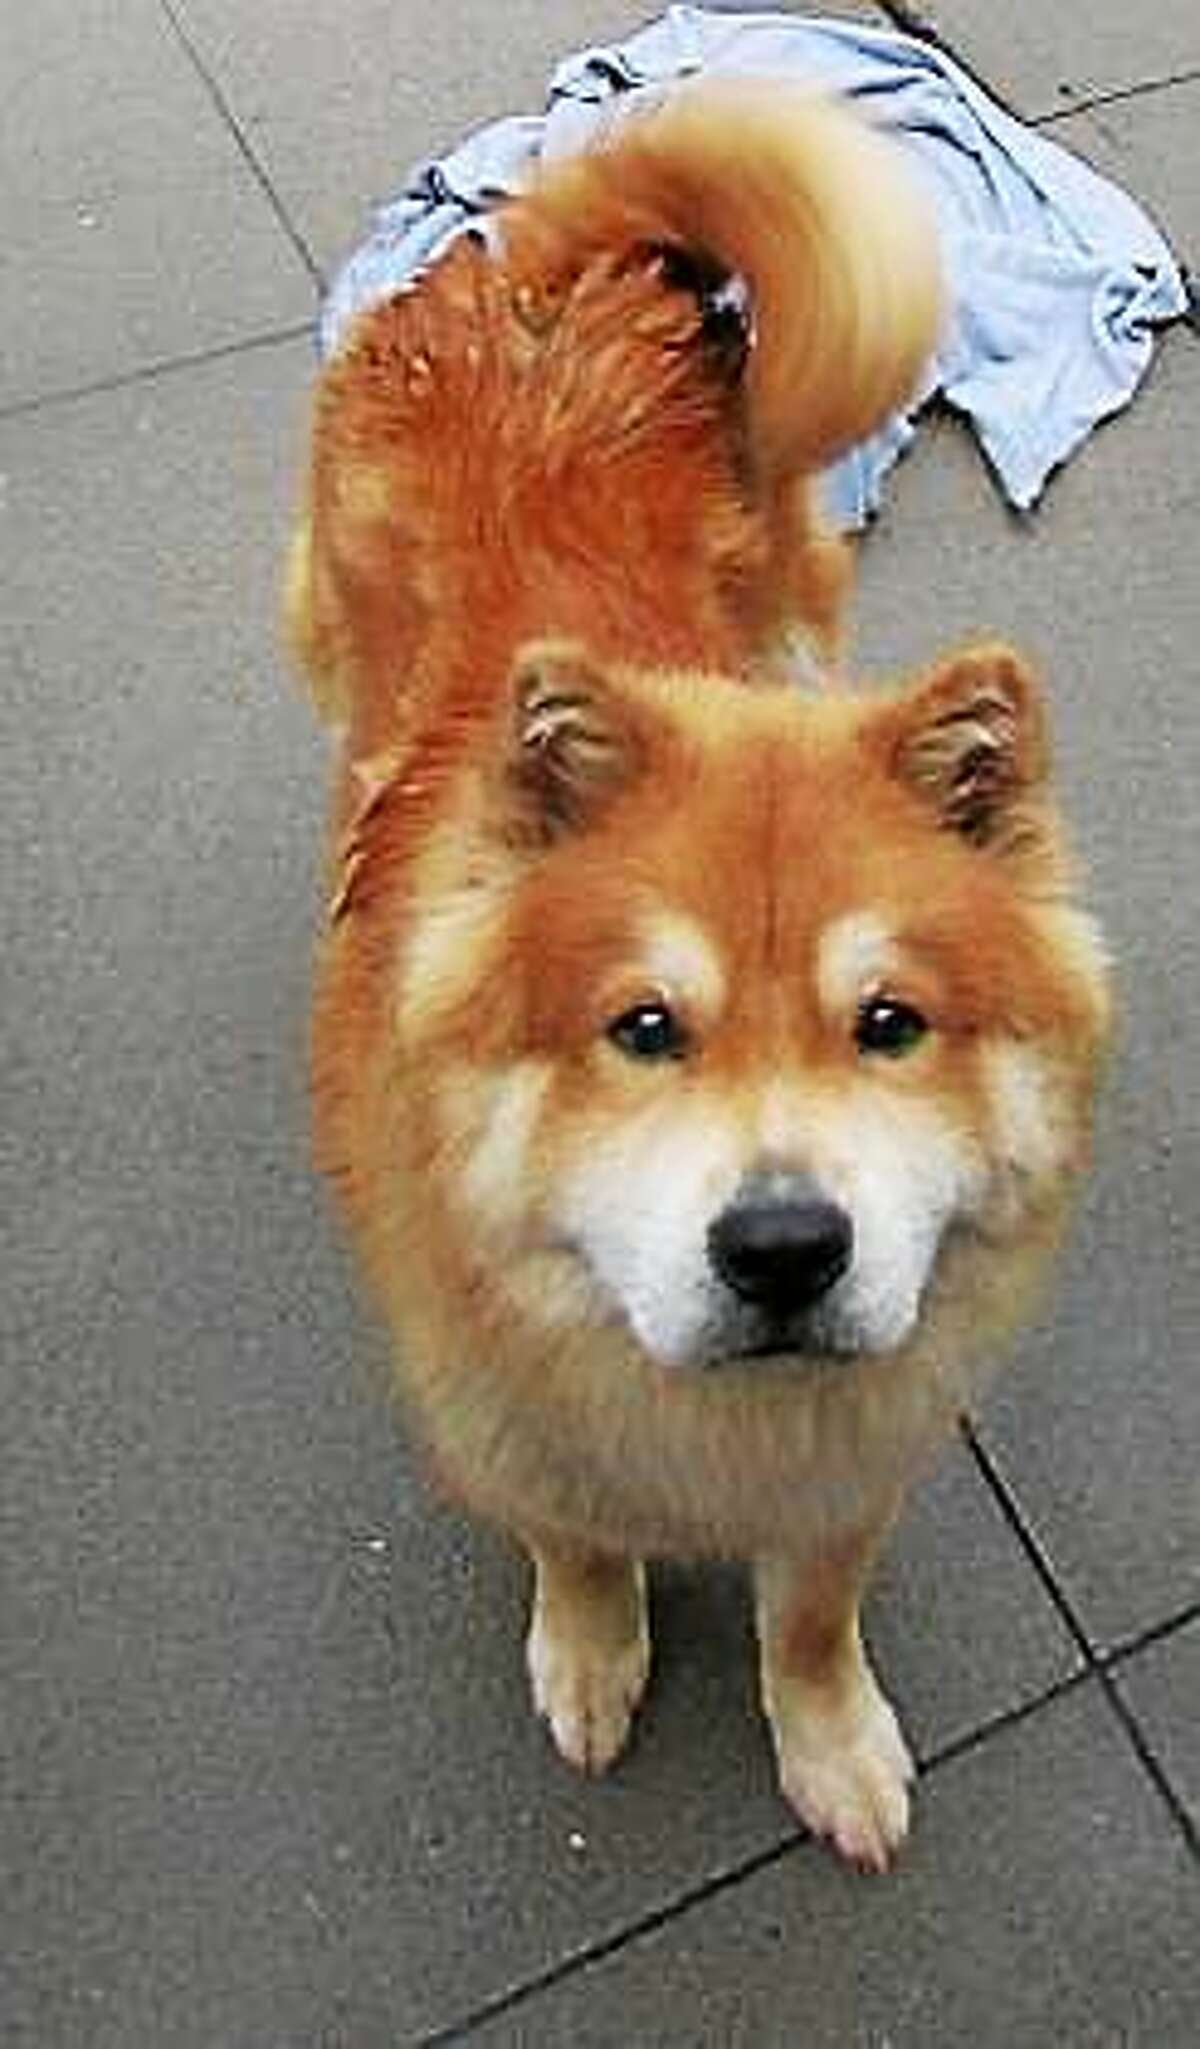 Funky Fresh is Chow Chow through and through, and this is very typical of his breed, so he would prefer to live with a family who has Chow Chow experience. One-year-old Funky should live in a single family owned home and any children in the household should be over 10 years of age. He has never been around cats or other dogs but seems willing to consider sharing his home with a furry friend. Funky is a high energy kind of dog and he is looking for a home where he can get lots of exercise every day! Remember, the Connecticut Humane Society has no time limits for adoption. Inquiries for adoption should be made at the Connecticut Humane Society located at 701 Russell Road in Newington or by calling (860) 594-4500 or toll free at 1-800-452-0114. The Connecticut Humane Society is a private organization with branch shelters in Waterford, Westport and a cat adoption center in the PetSMART store in New London. The Connecticut Humane Society is not affiliated with any other animal welfare organizations on the national, regional or local level.